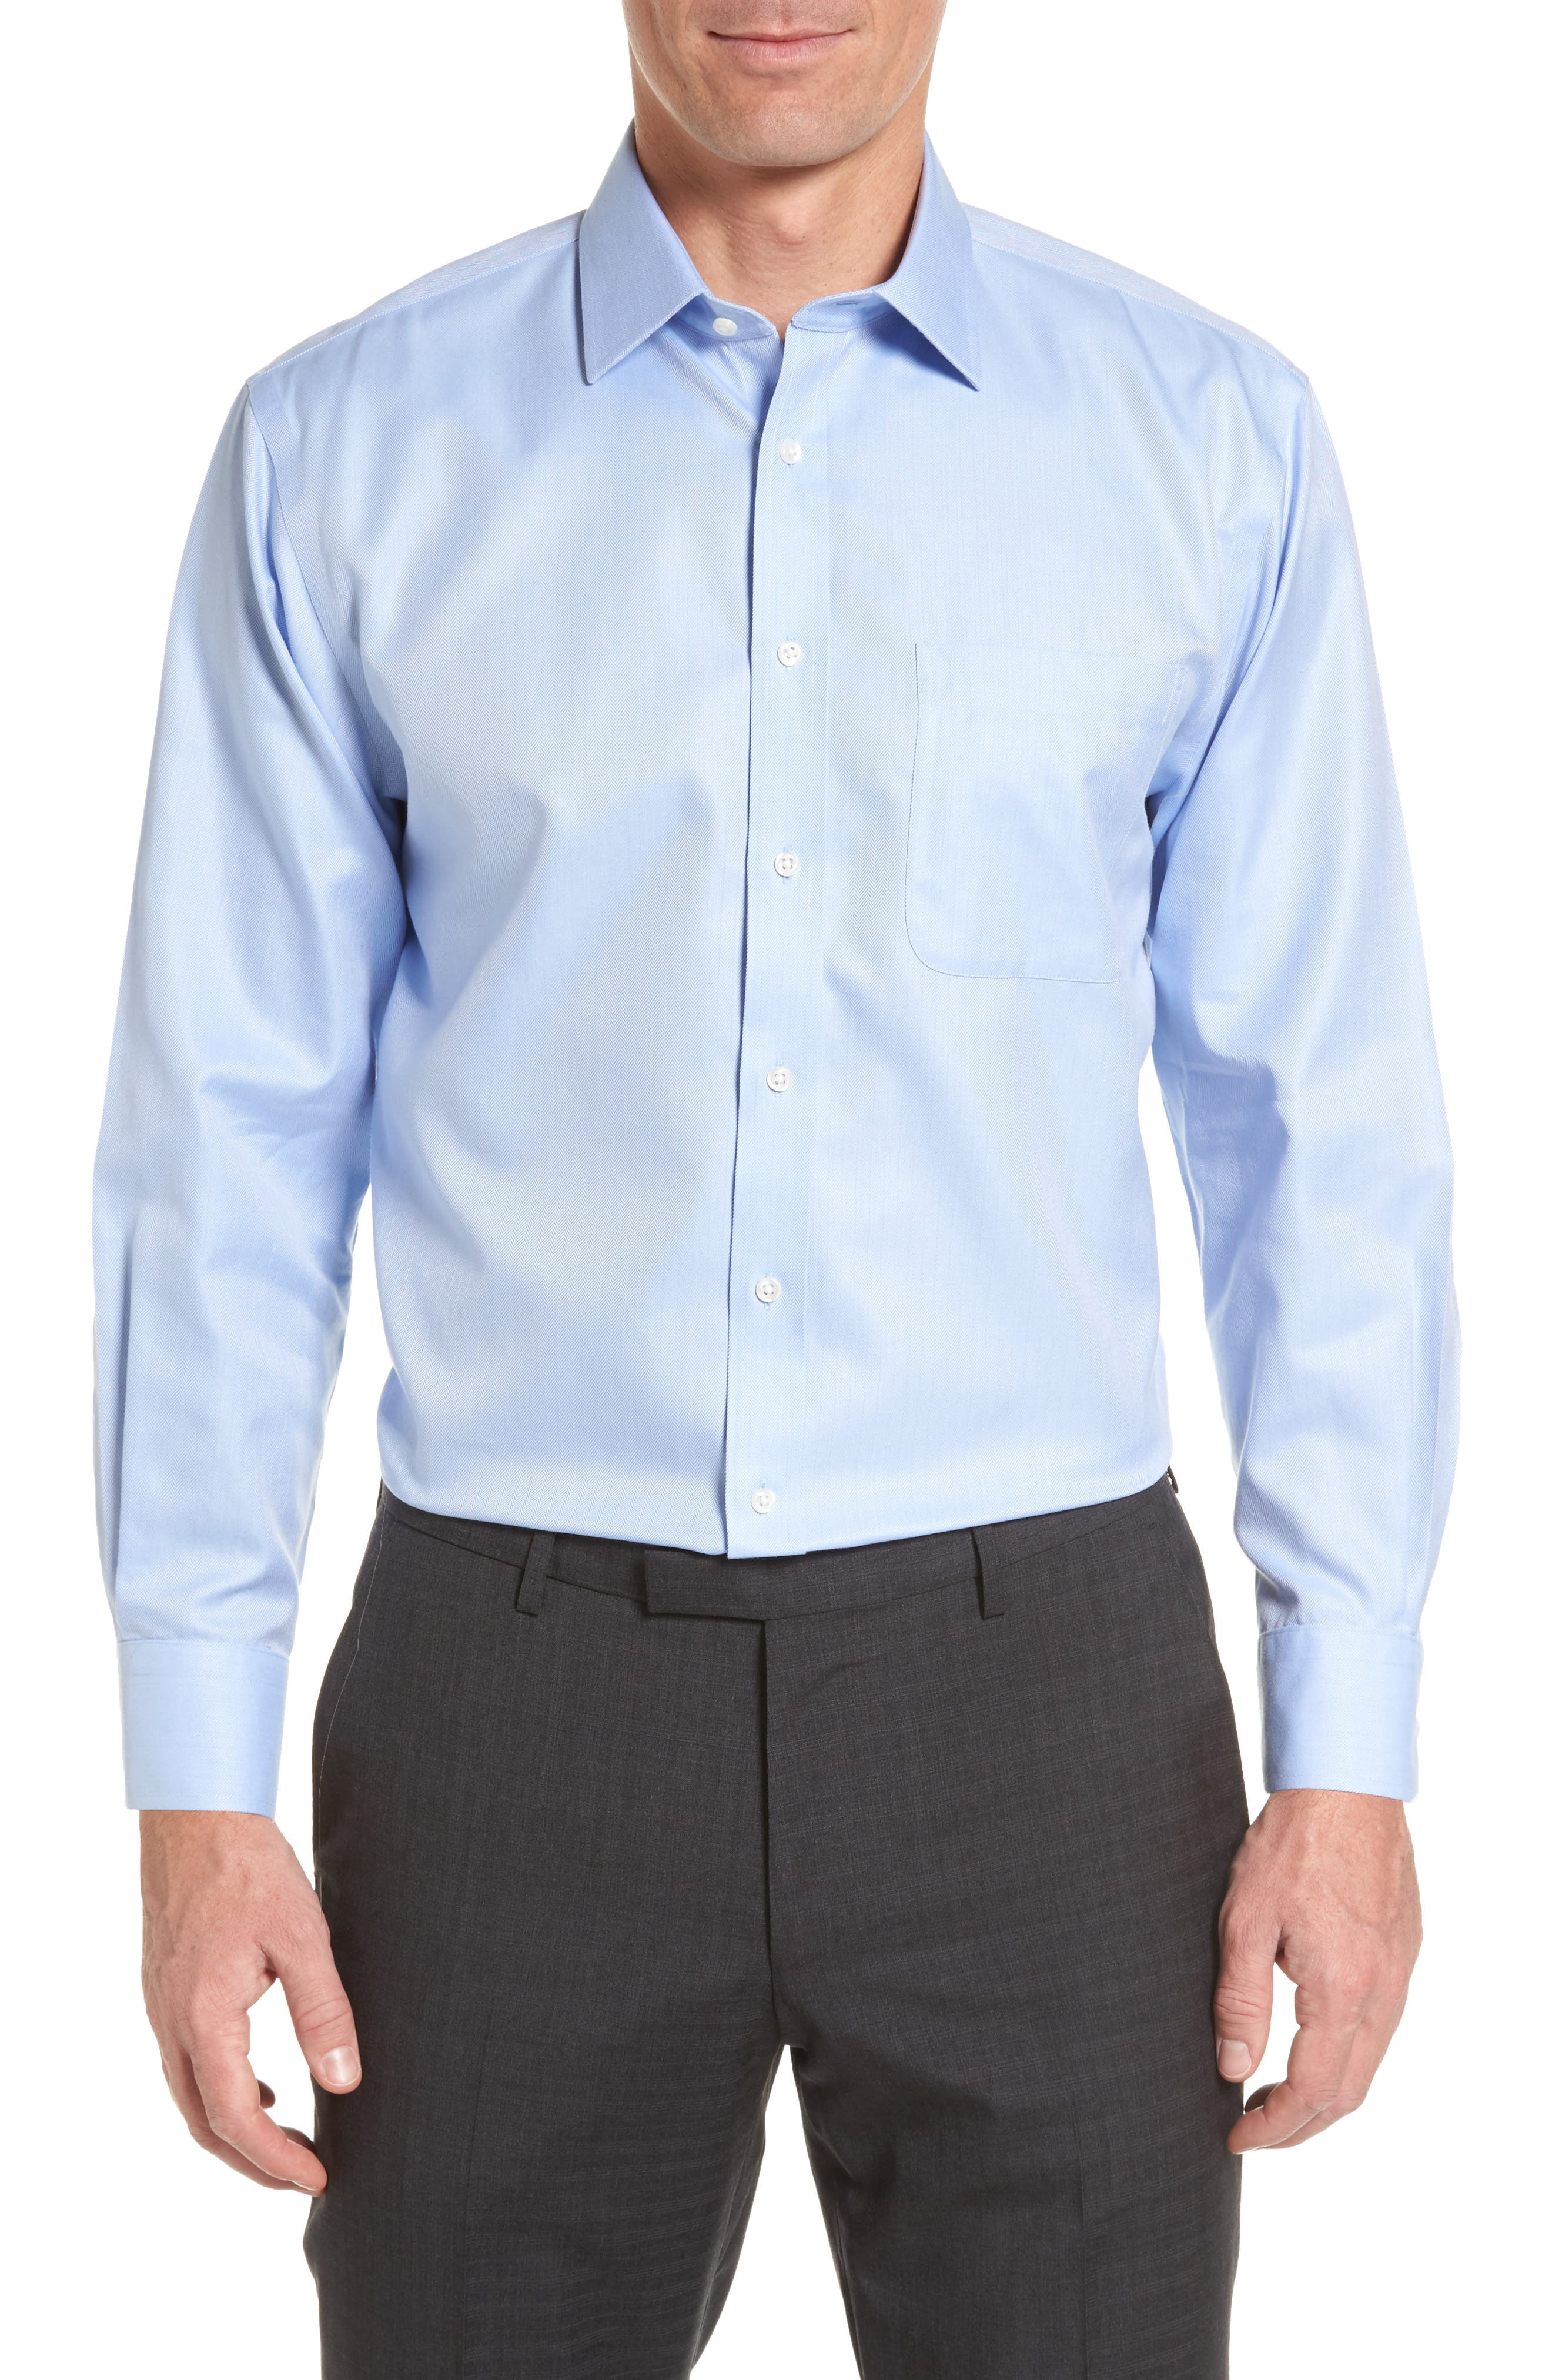 Nordstrom Shop Smartcare(TM) Traditional Fit Herringbone Dress Shirt - Blue